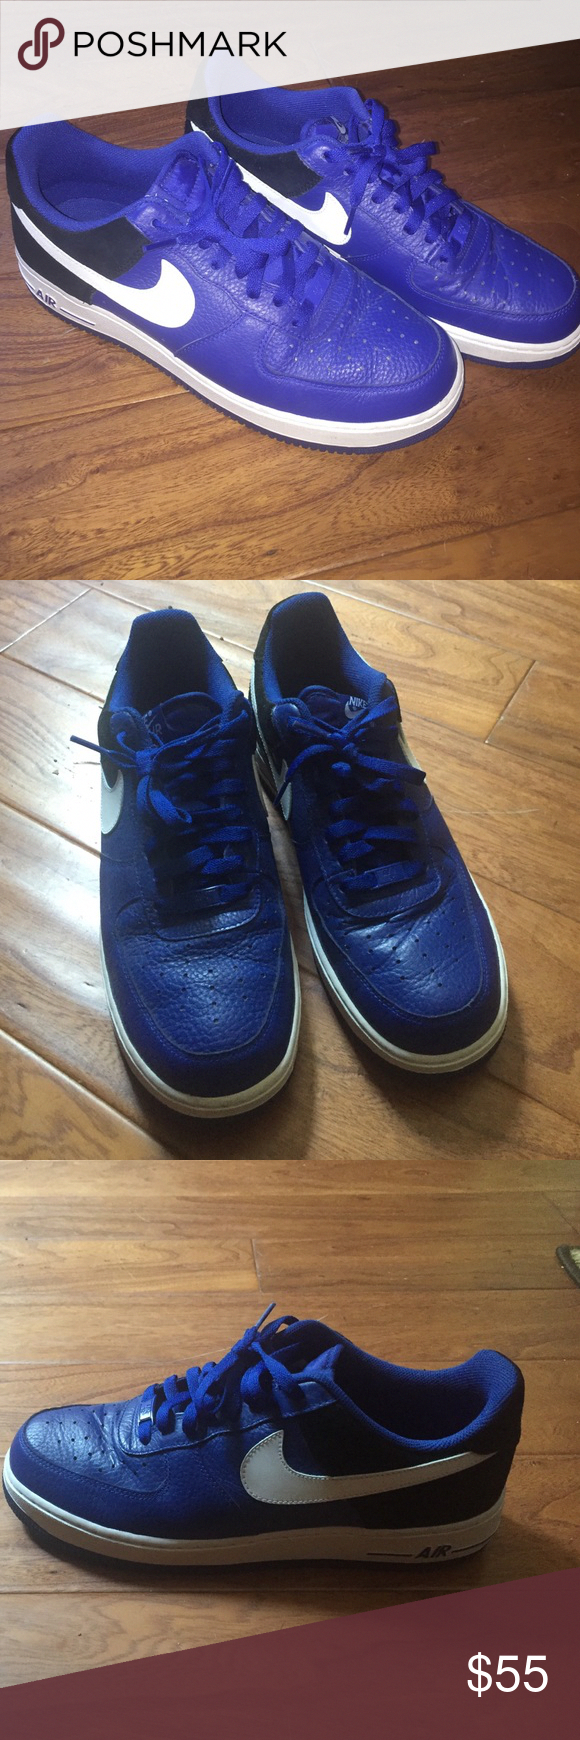 best sneakers 2a82d cb176 Nike Air Force 1 Low Brand new, never worn, blue, black, and white Nike Air  Force 1 low. Nike Shoes Sneakers  Ignite3WomensrunningShoes